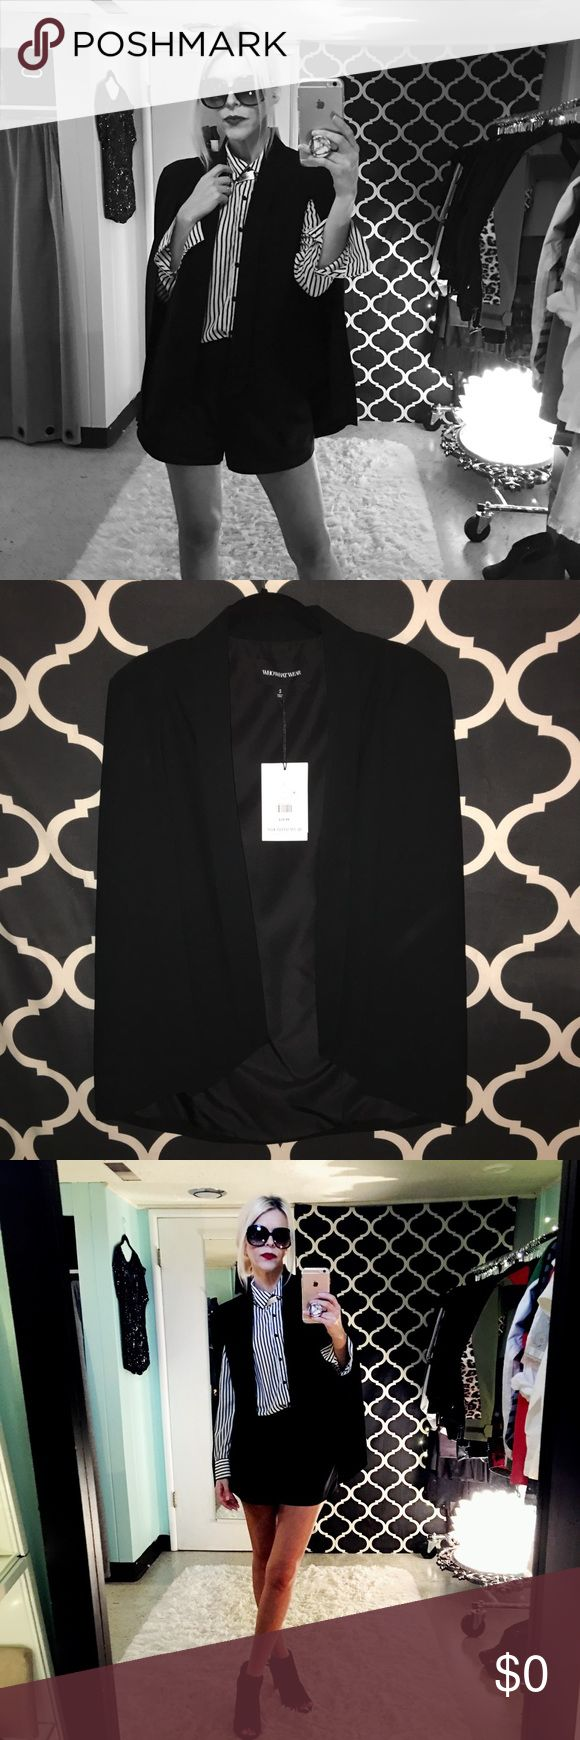 Who What Wear Cape Blazer Who What Wear Black Cape Blazer. New with tag attached. Amazing quality! Fully lined. You won't be disappointed. Who What Wear Jackets & Coats Capes